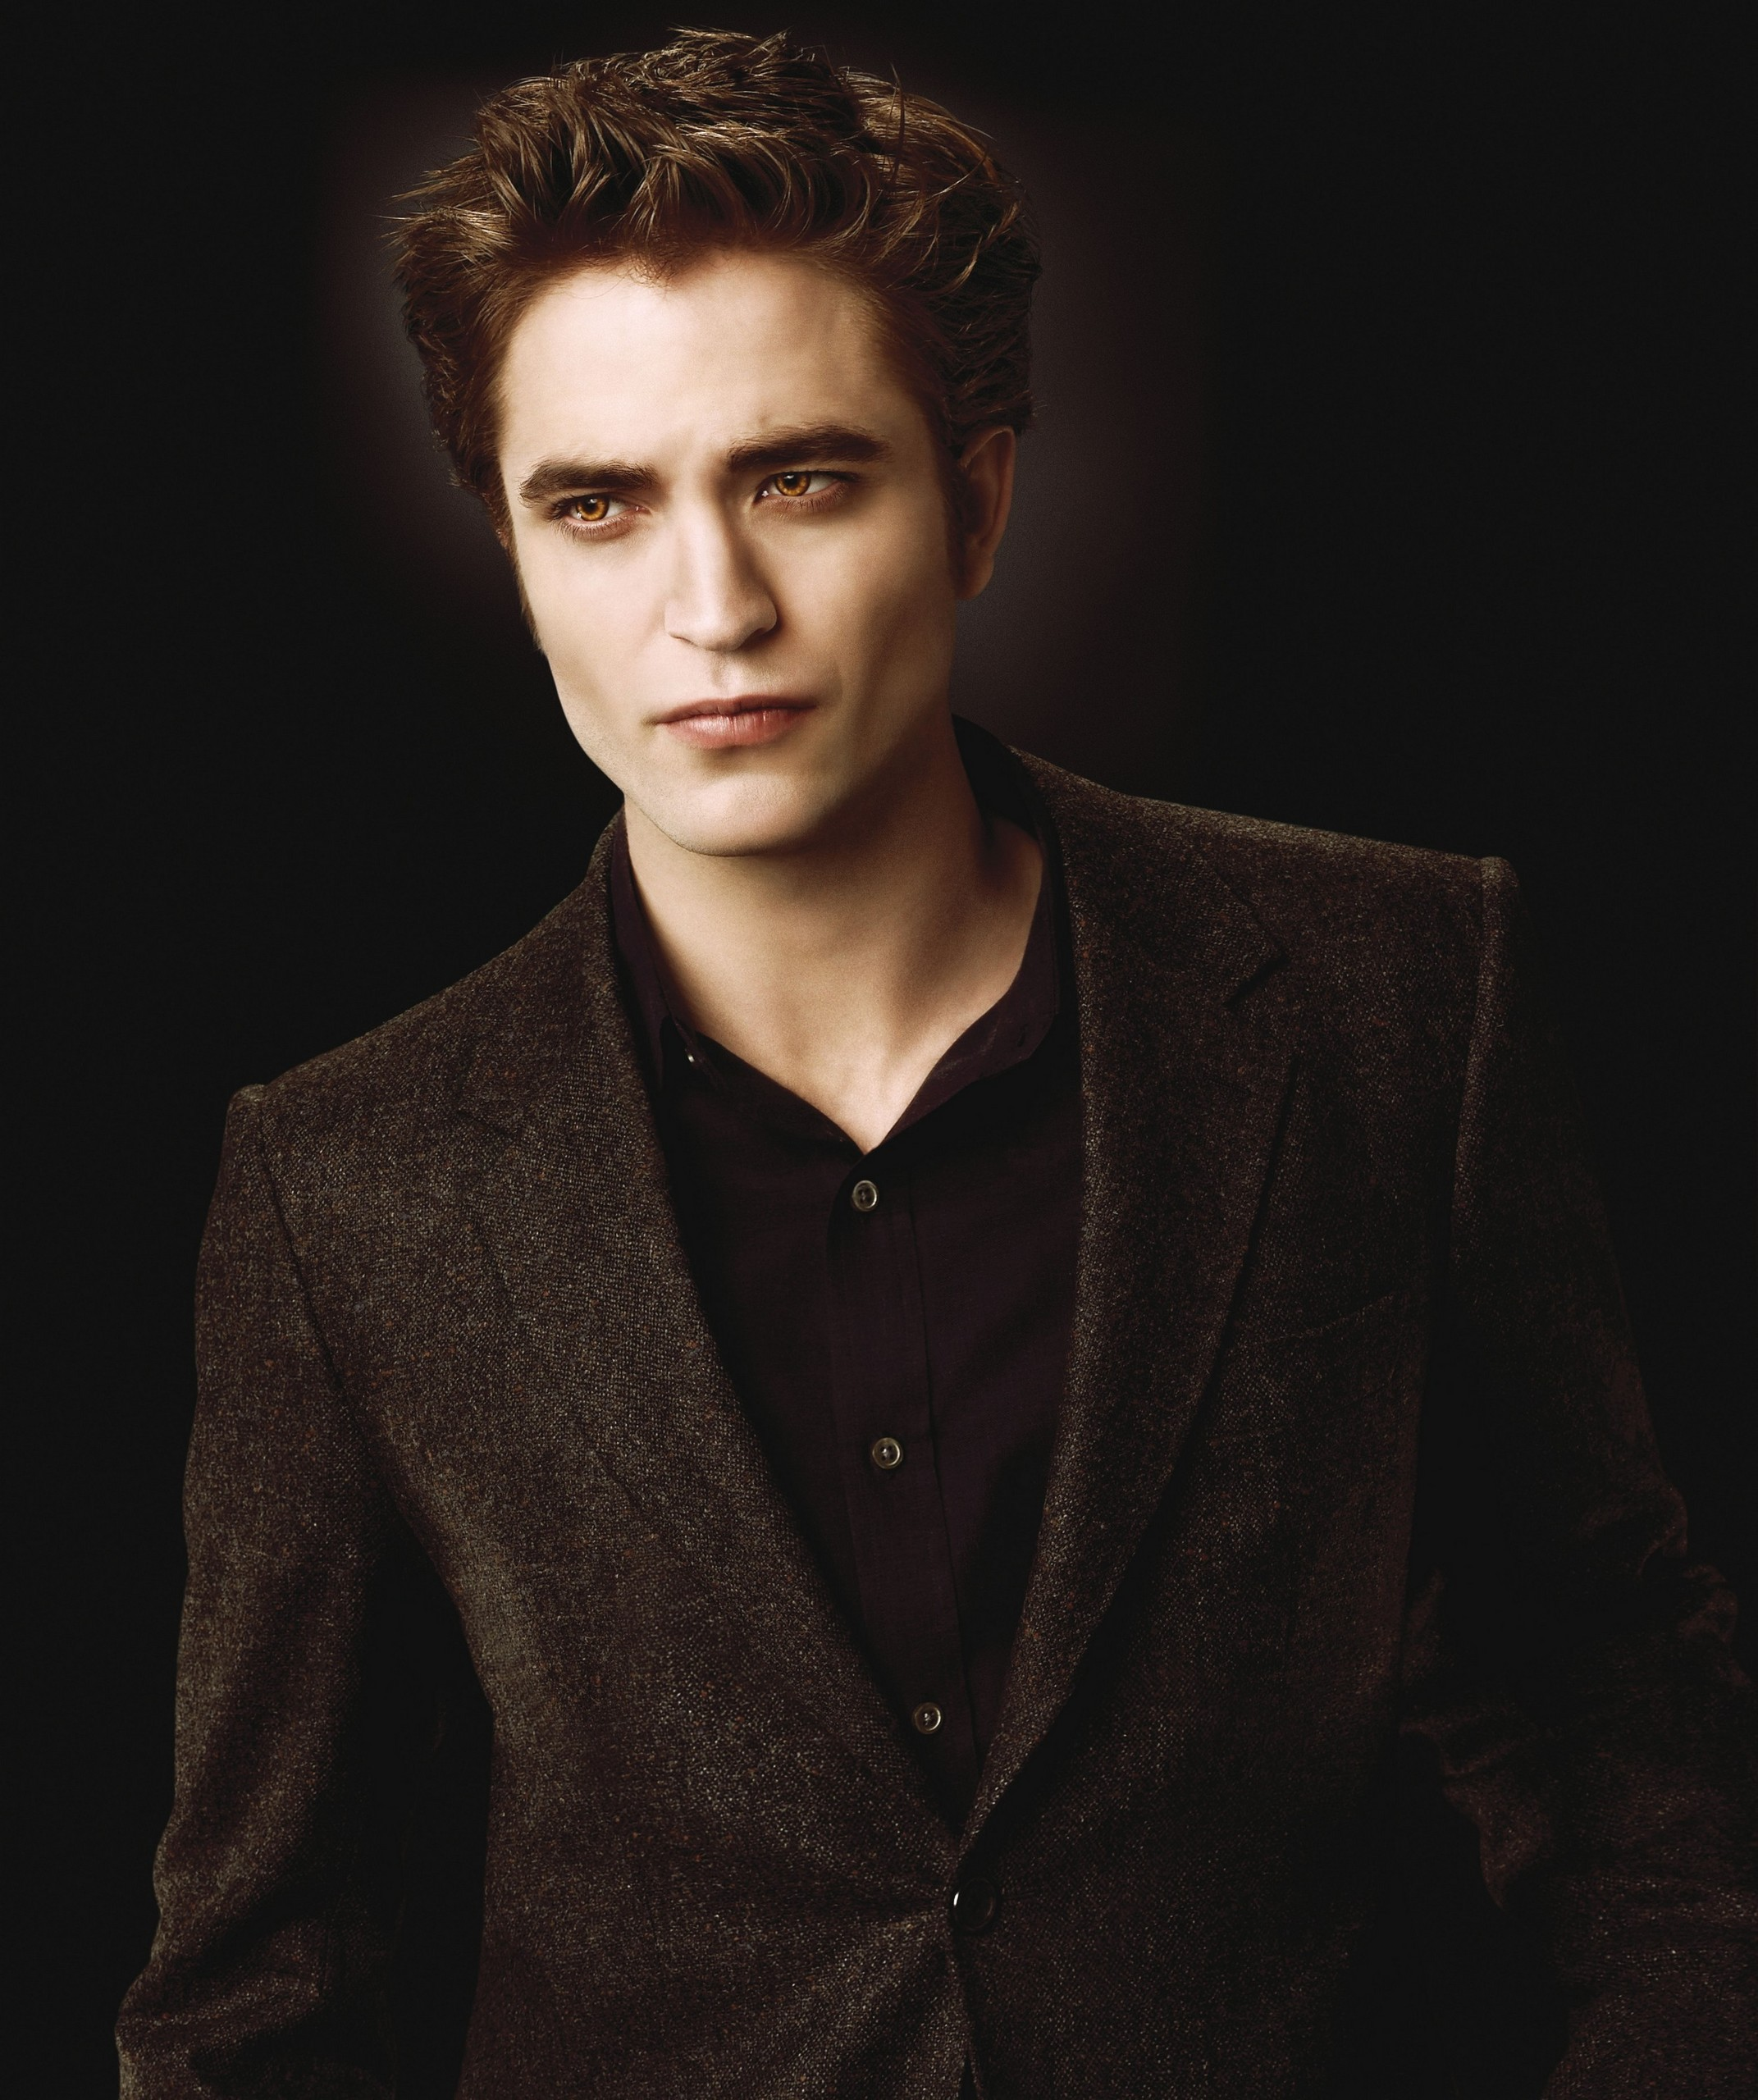 Hq Edward Cullen Twilight Crep Sculo Photo 9027164